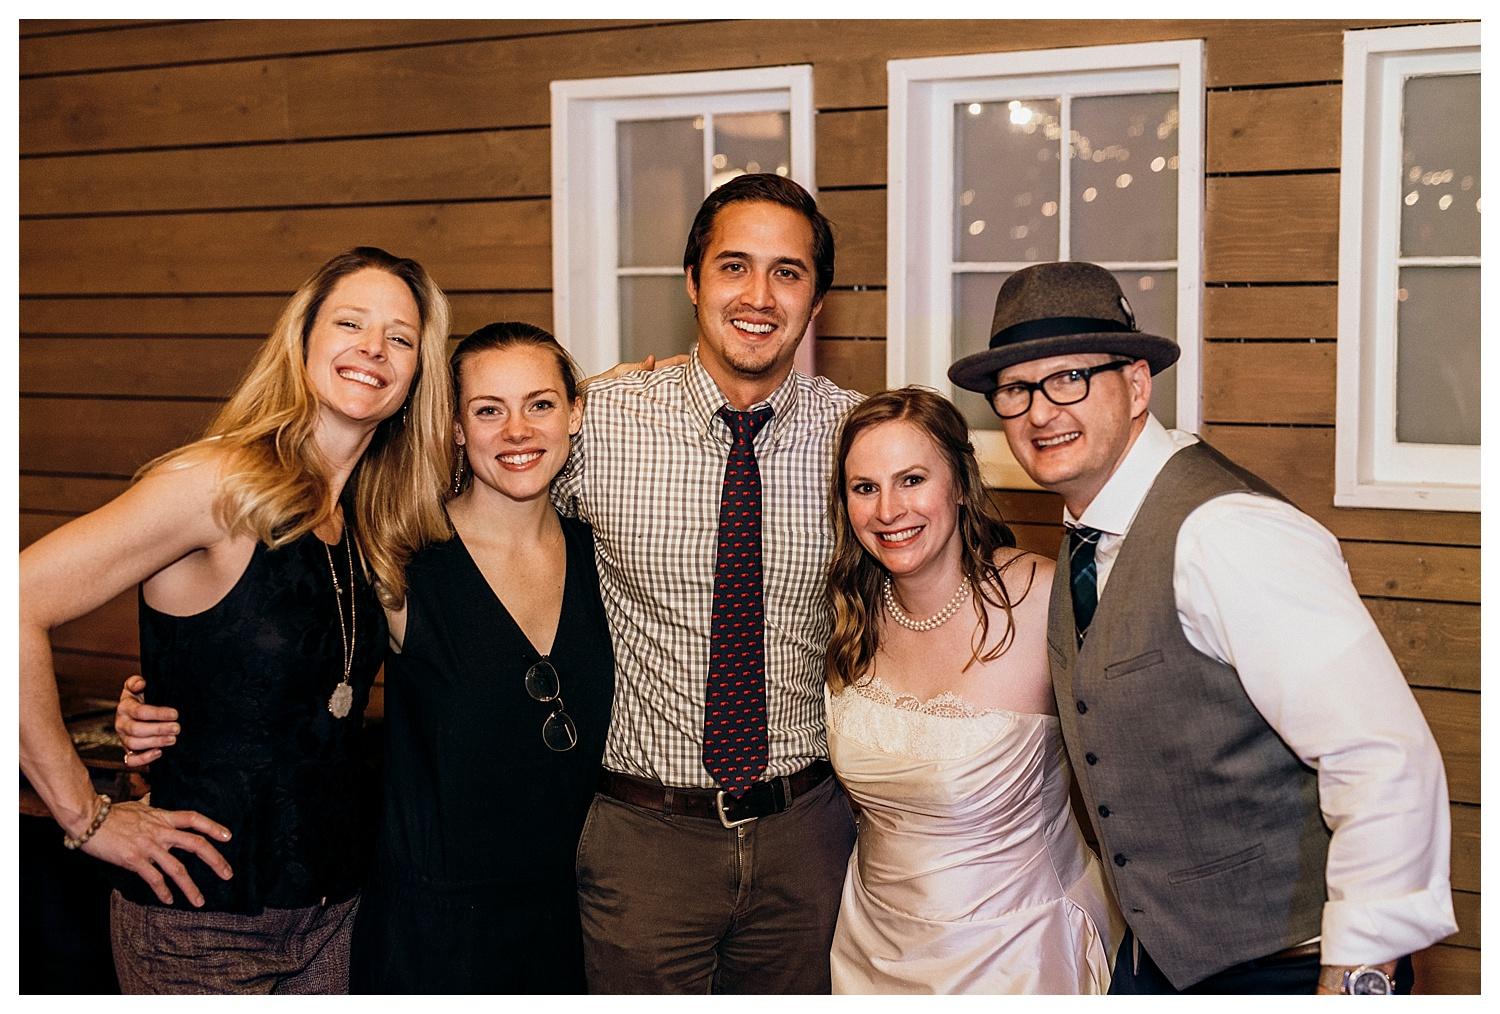 Wedding_Writers_The_Barn_At_Raccoon_Creek_Wedding_Apollo_Fields_064.jpg